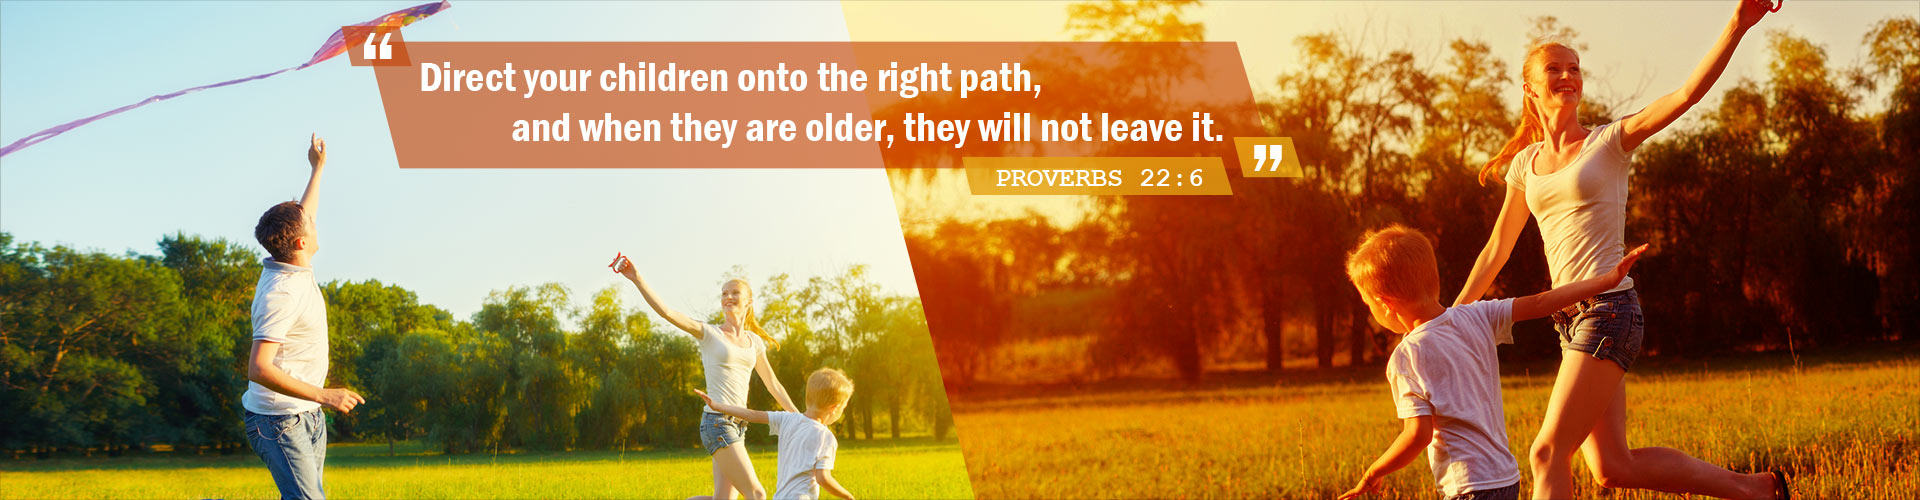 """""""Direct your children onto the right path, and when they are older, they will not leave it."""